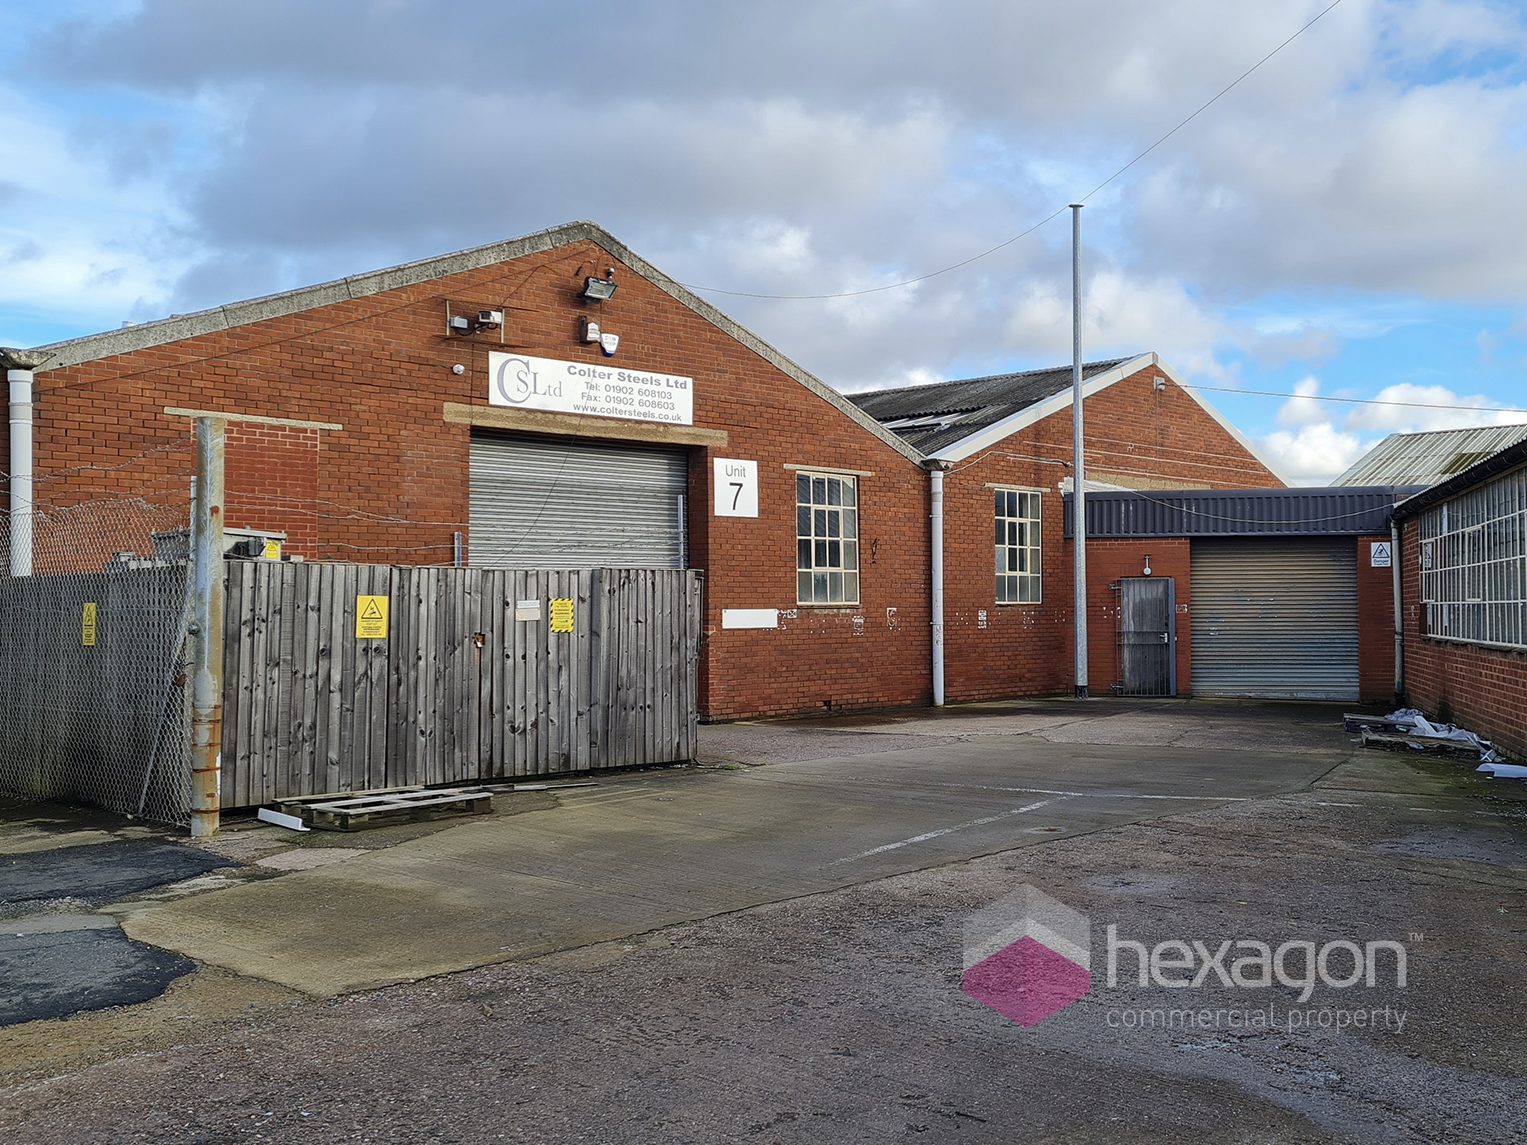 Light Industrial for rent in Willenhall. From Hexagon Commercial Property